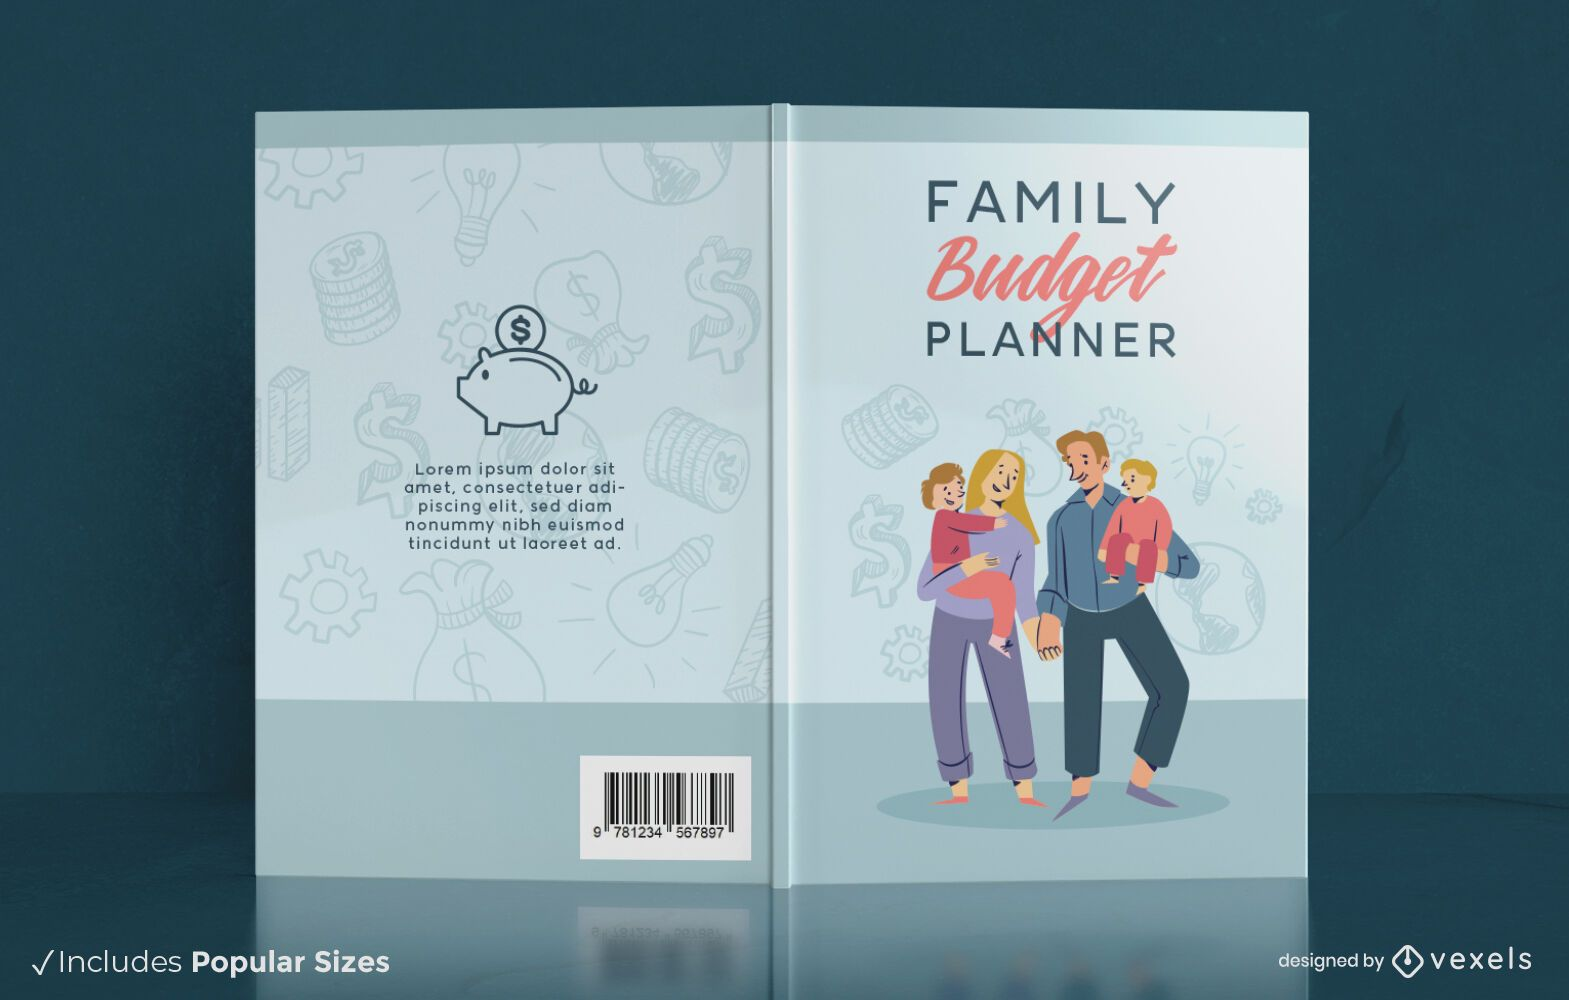 Family budget planner book cover design